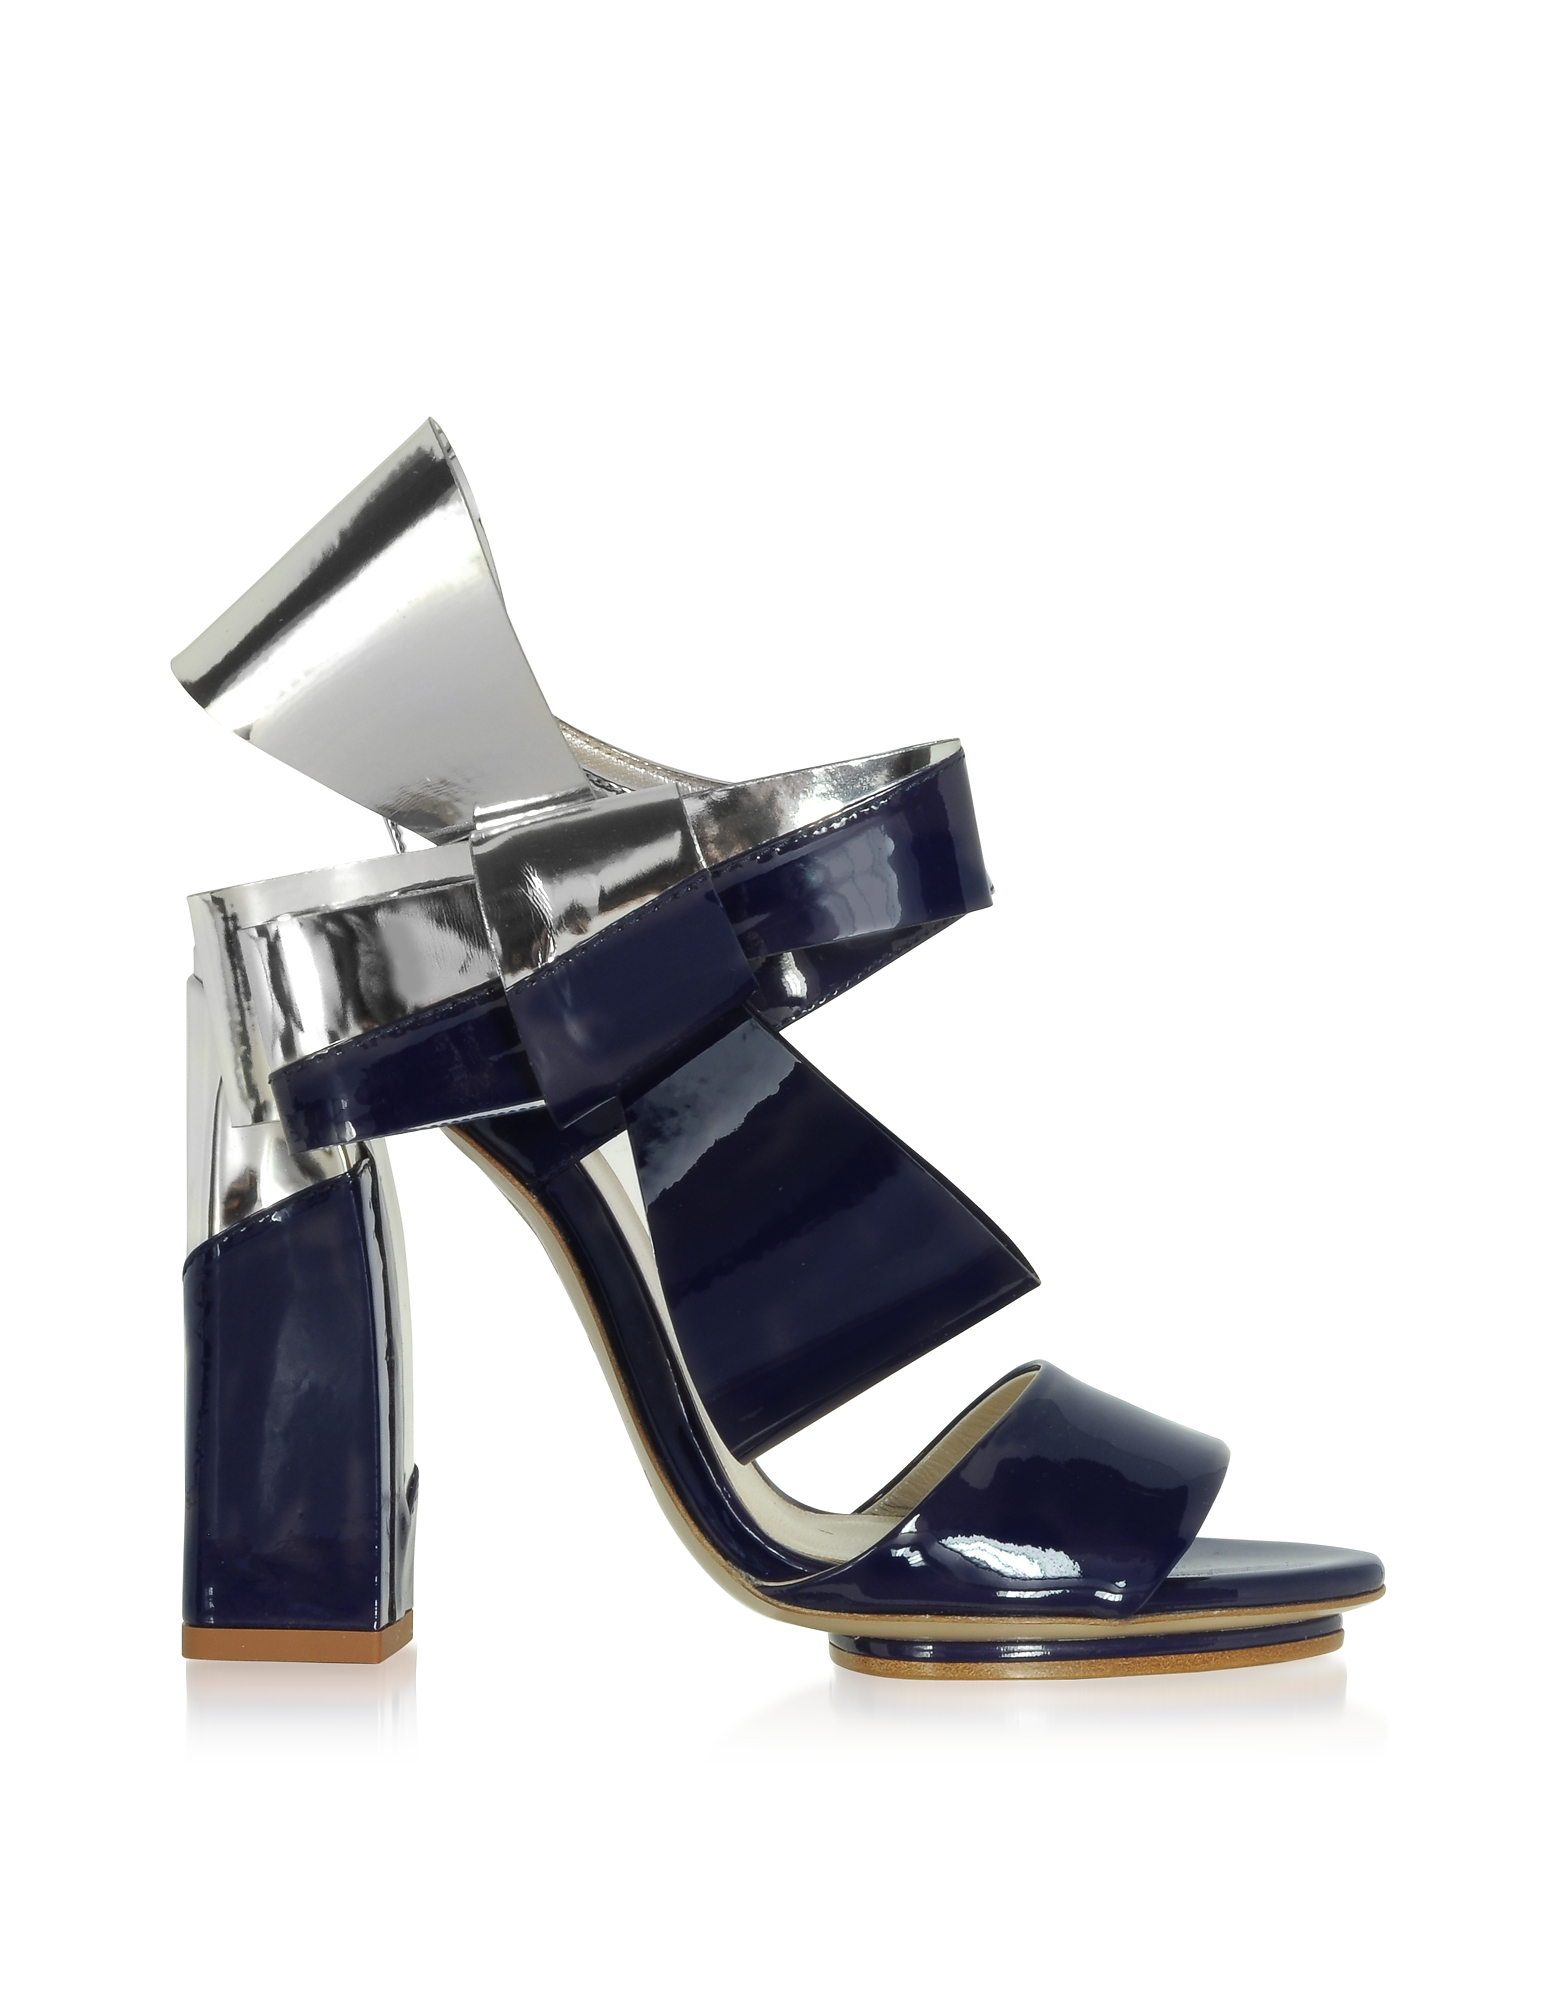 Image of Delpozo Designer Shoes, Silver and Navy Blue Patent Leather Bow Sandals